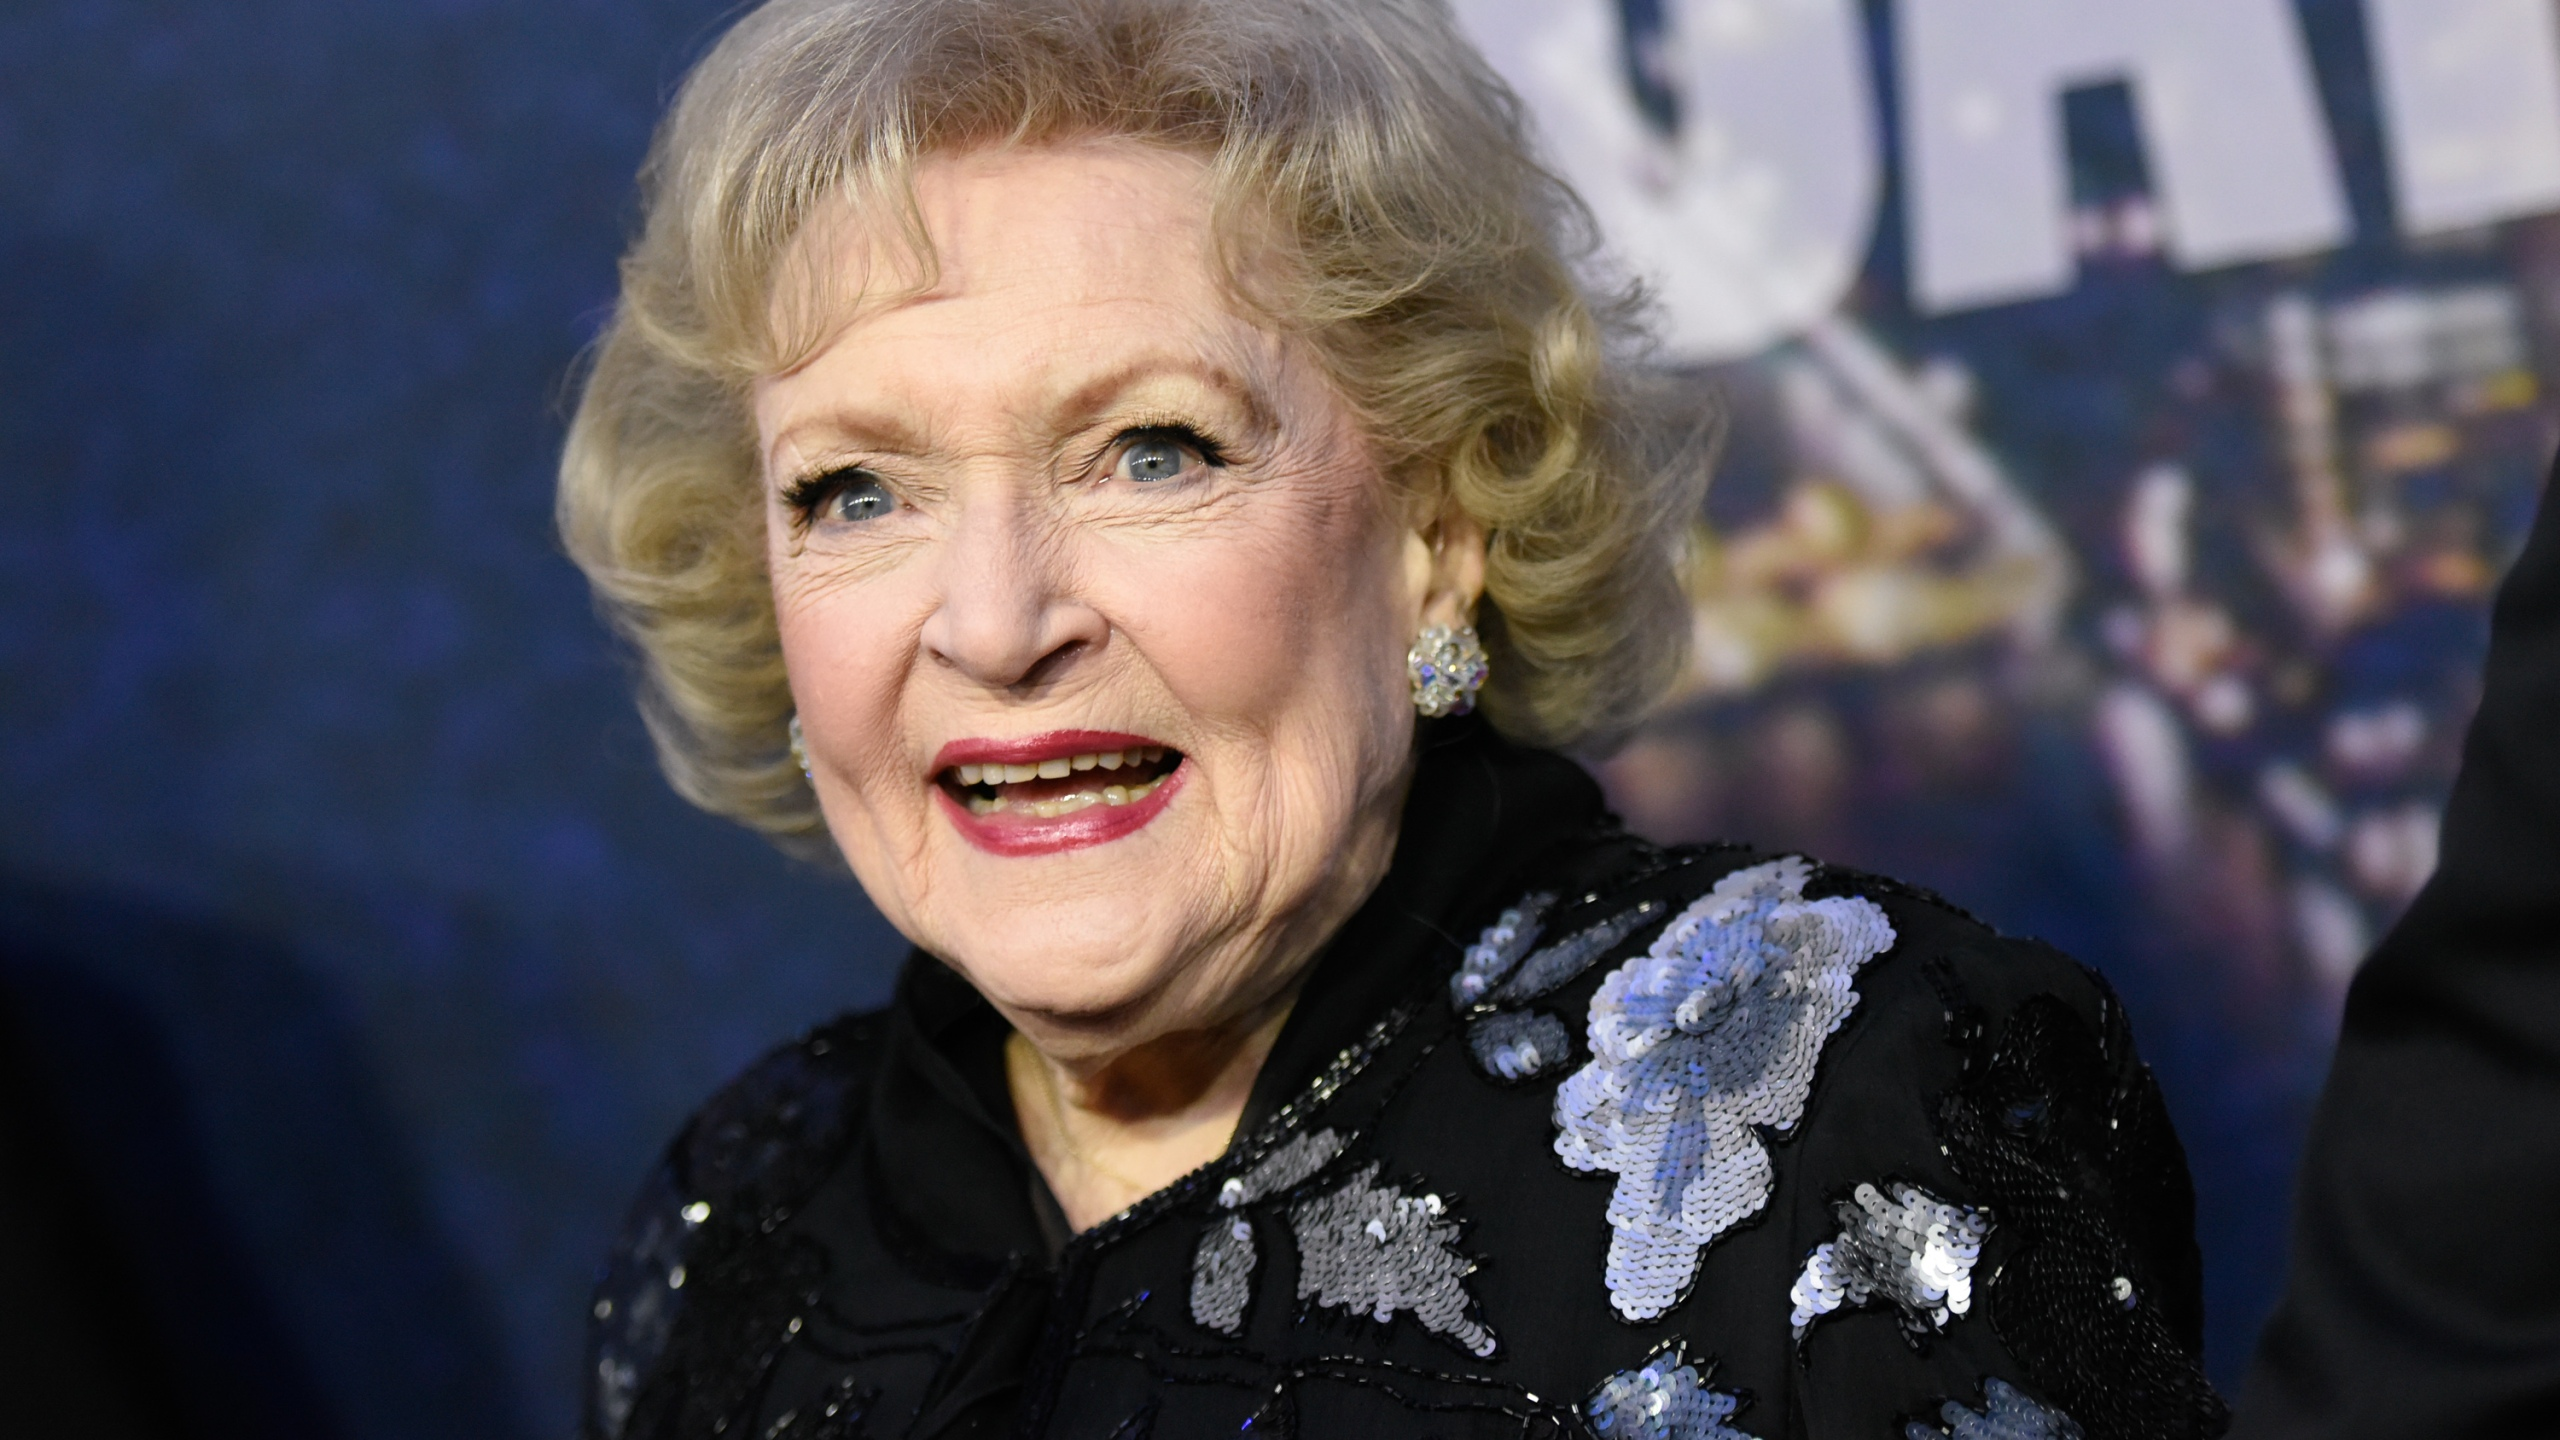 In this Feb. 15, 2015 file photo, Betty White attends the SNL 40th Anniversary Special in New York. (Evan Agostini/Invision/AP, File)